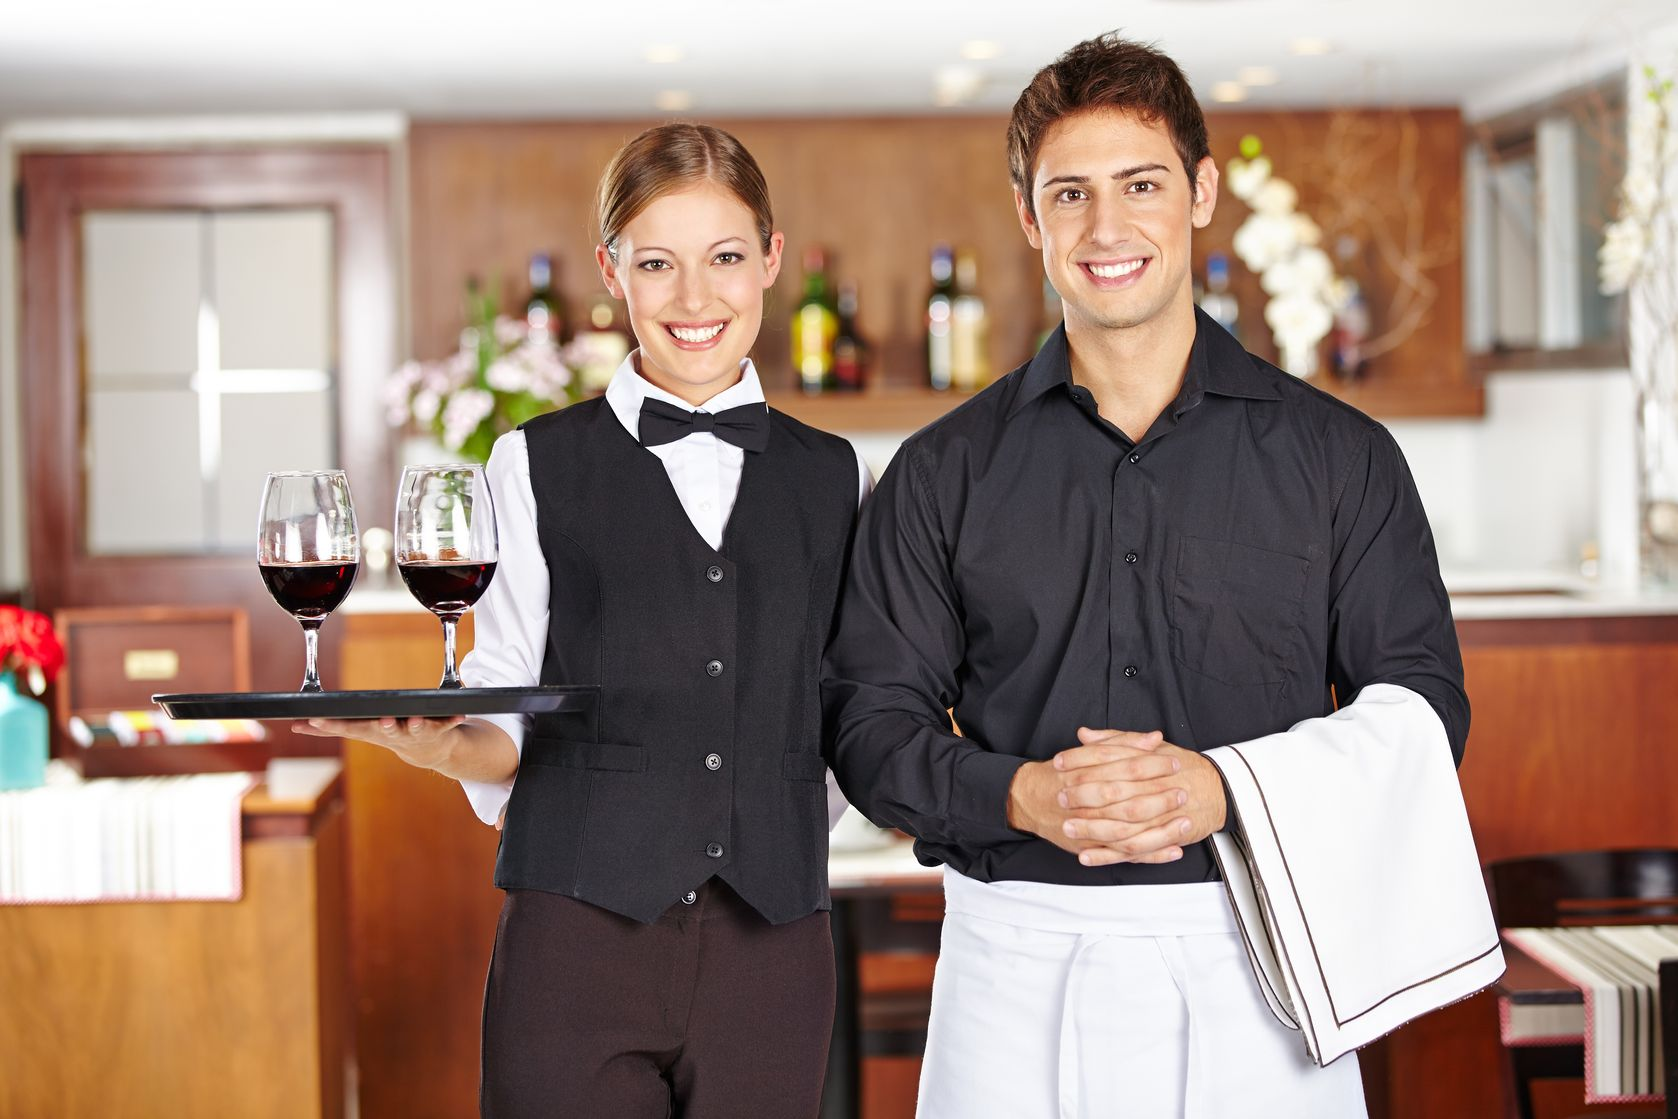 Hospitality and Catering Business for sale in Tasmania